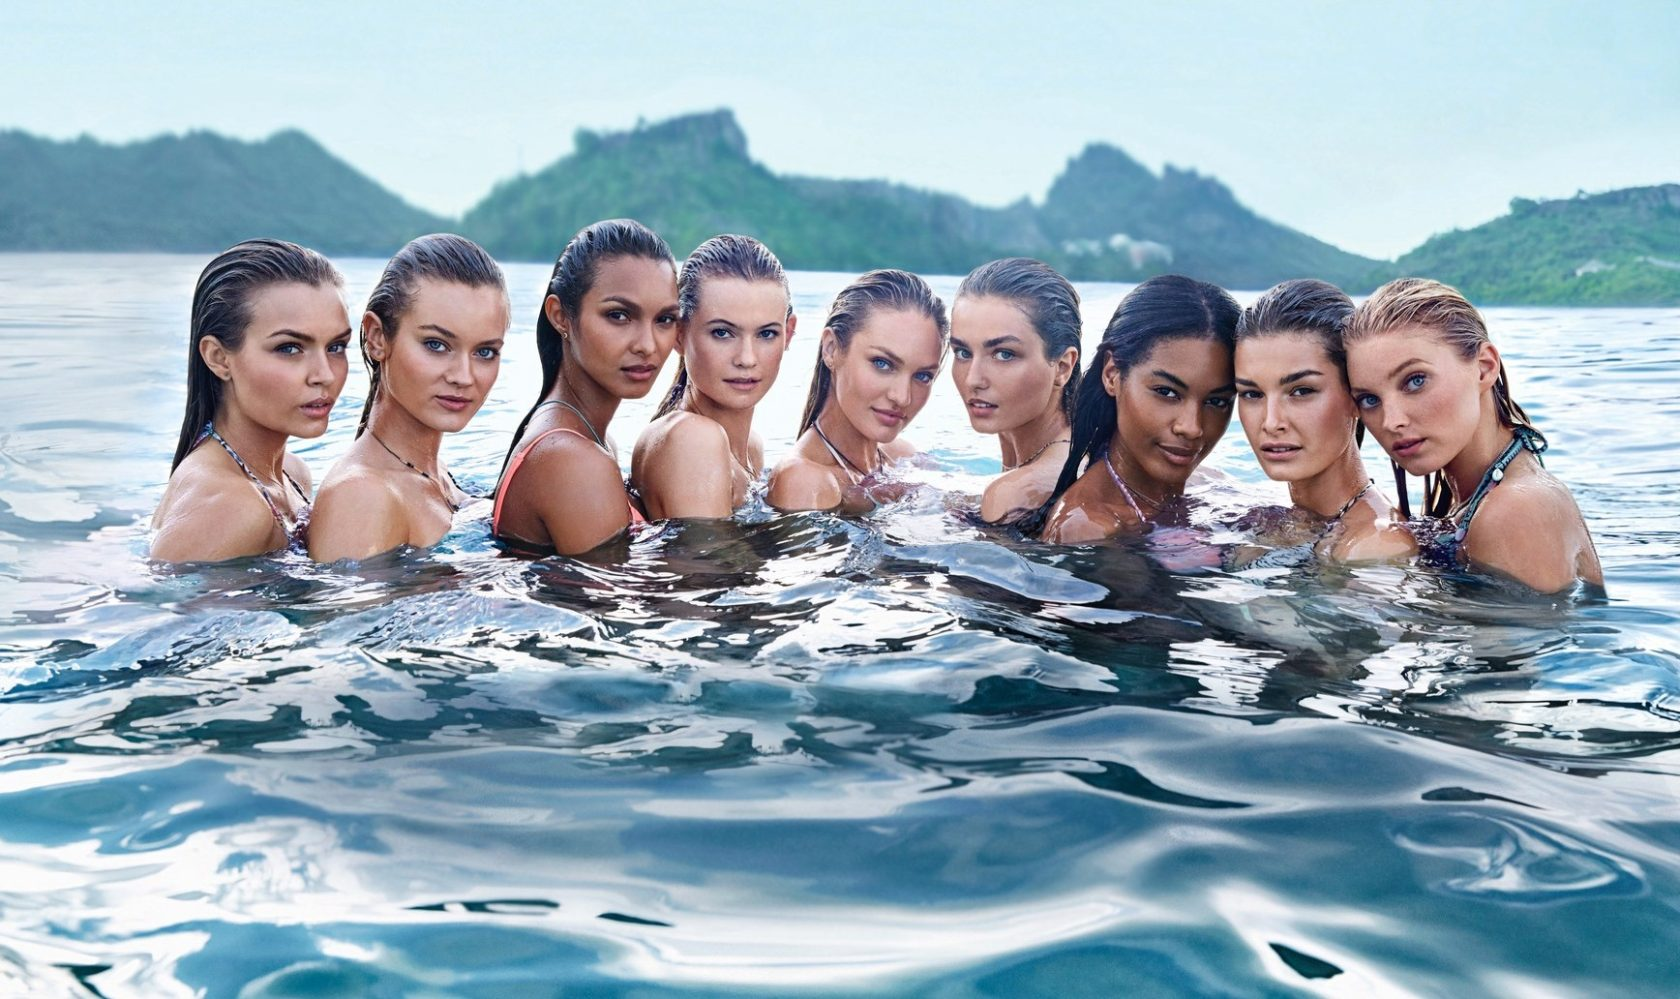 Victoria's Secret Supermodels: Josephine Skriver, Jac Jagaciak, Lais Ribiero, Behati Prinsloo, Candice Swanepoel , Andreea Diaconu, Sharam Diniz, Ophelie Guillermand and Elsa Hosk pose for The New Swim 2015 Catalogue, Image: 218650793, License: Rights-managed, Restrictions: Worldwide rights, Model Release: no, Credit line: Profimedia, Crystal pictures